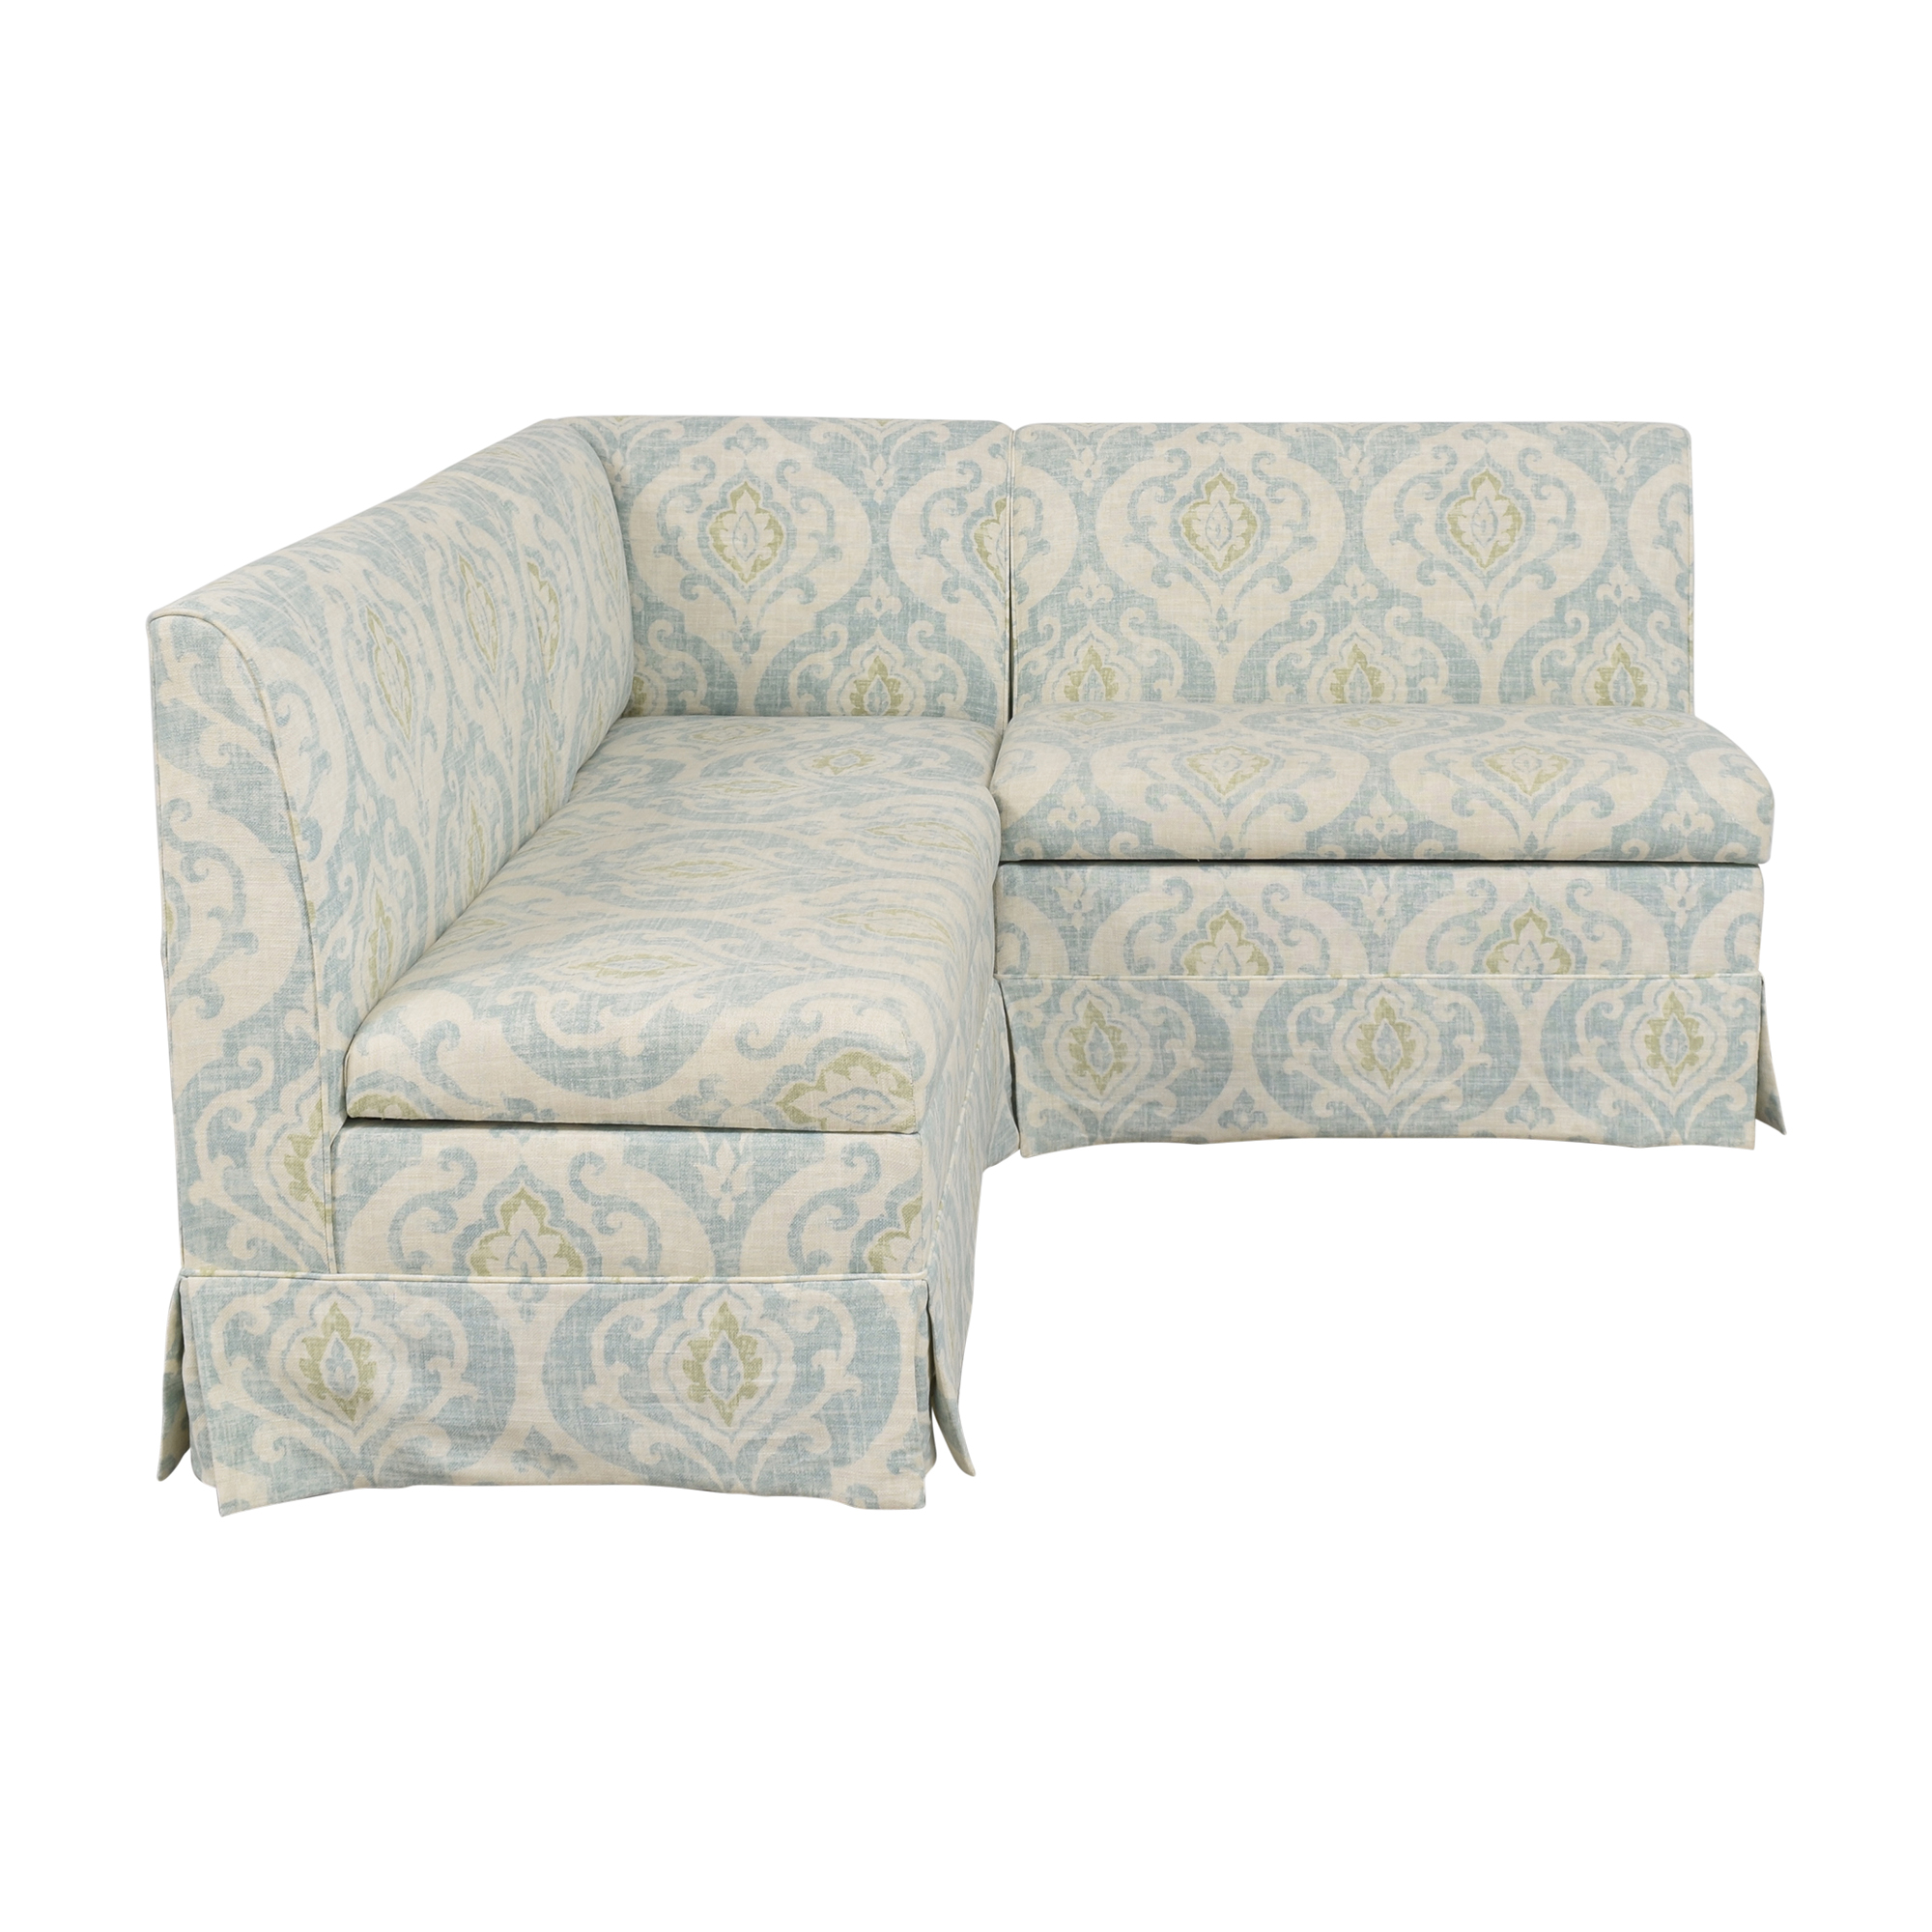 Wisteria Wisteria Sectional Storage Banquette on sale